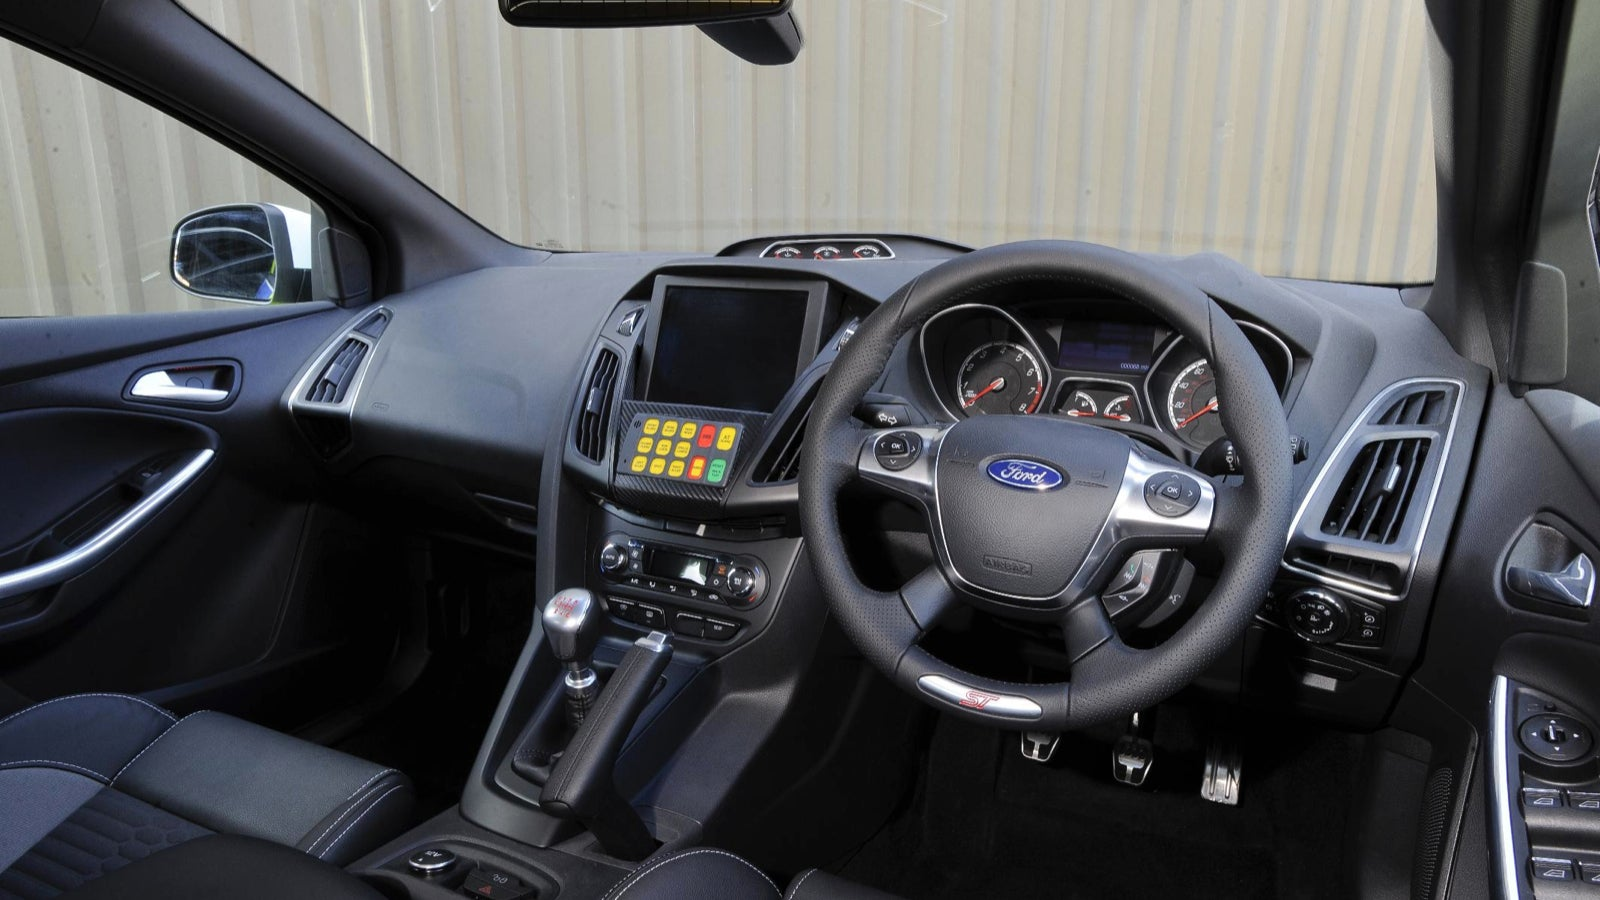 & Fordu0027s Focus ST Police Car Makes Us Want The Ticket markmcfarlin.com